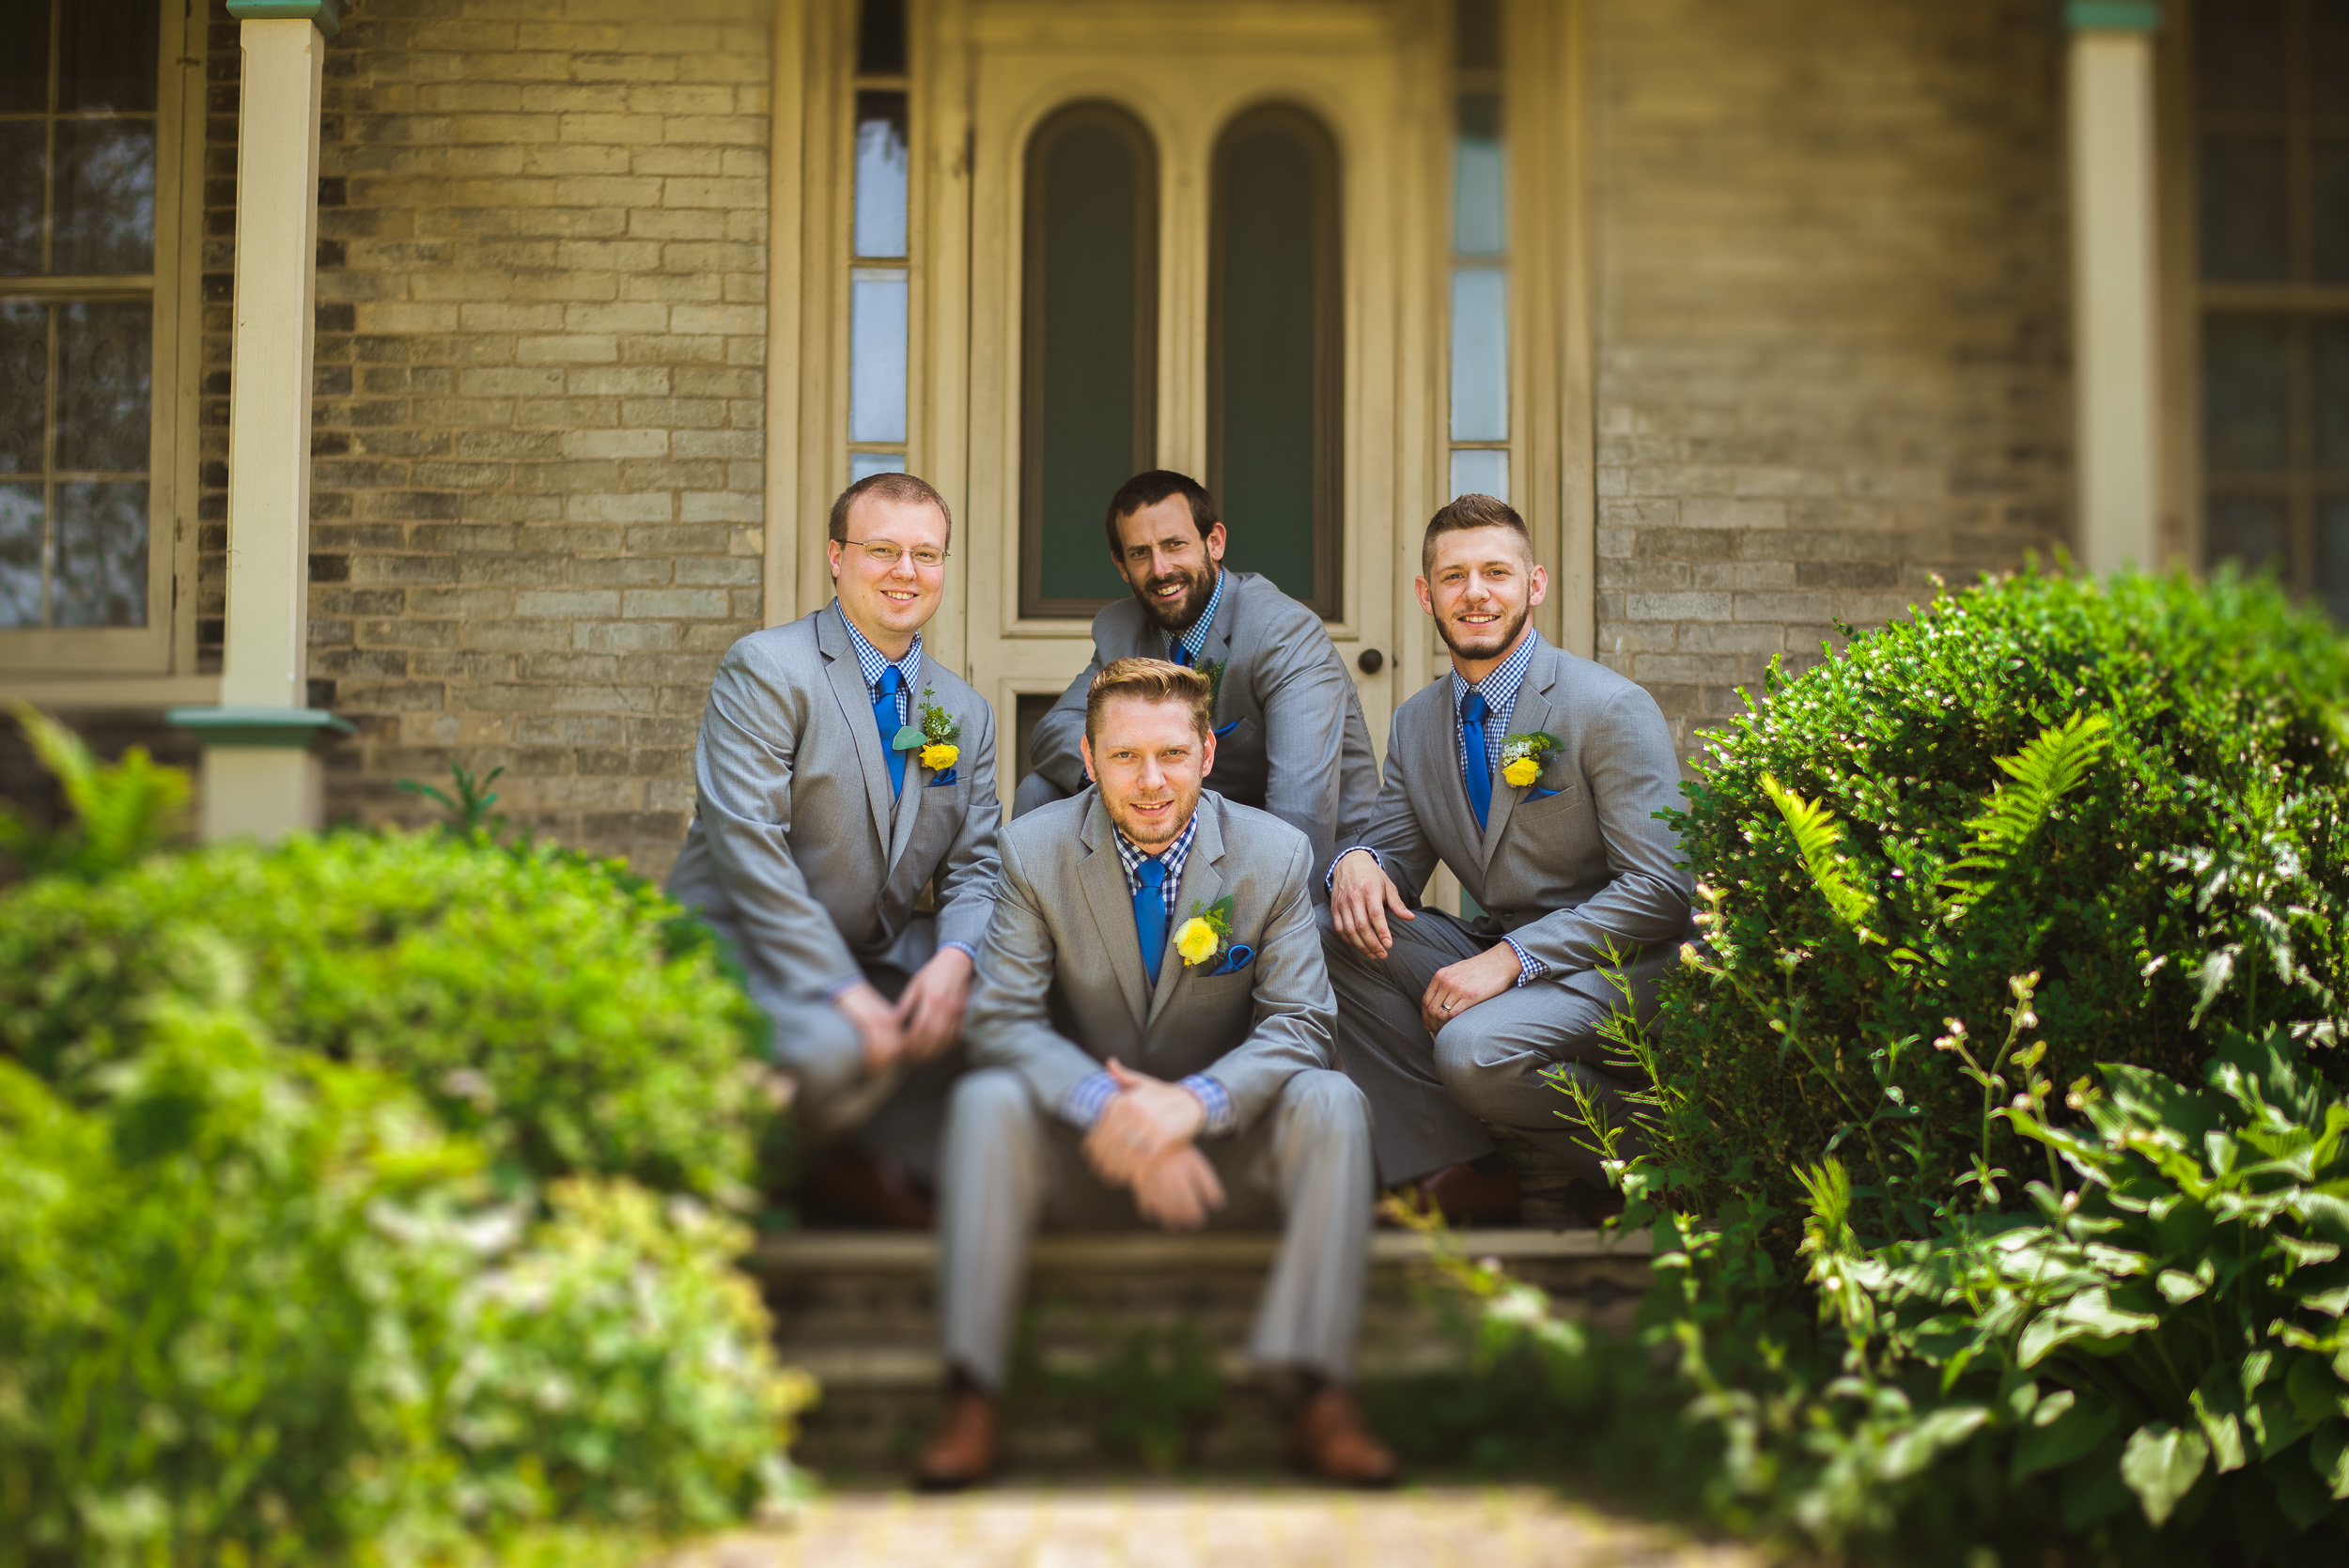 03-groom-and-groomsmen-freelensing-tehnique